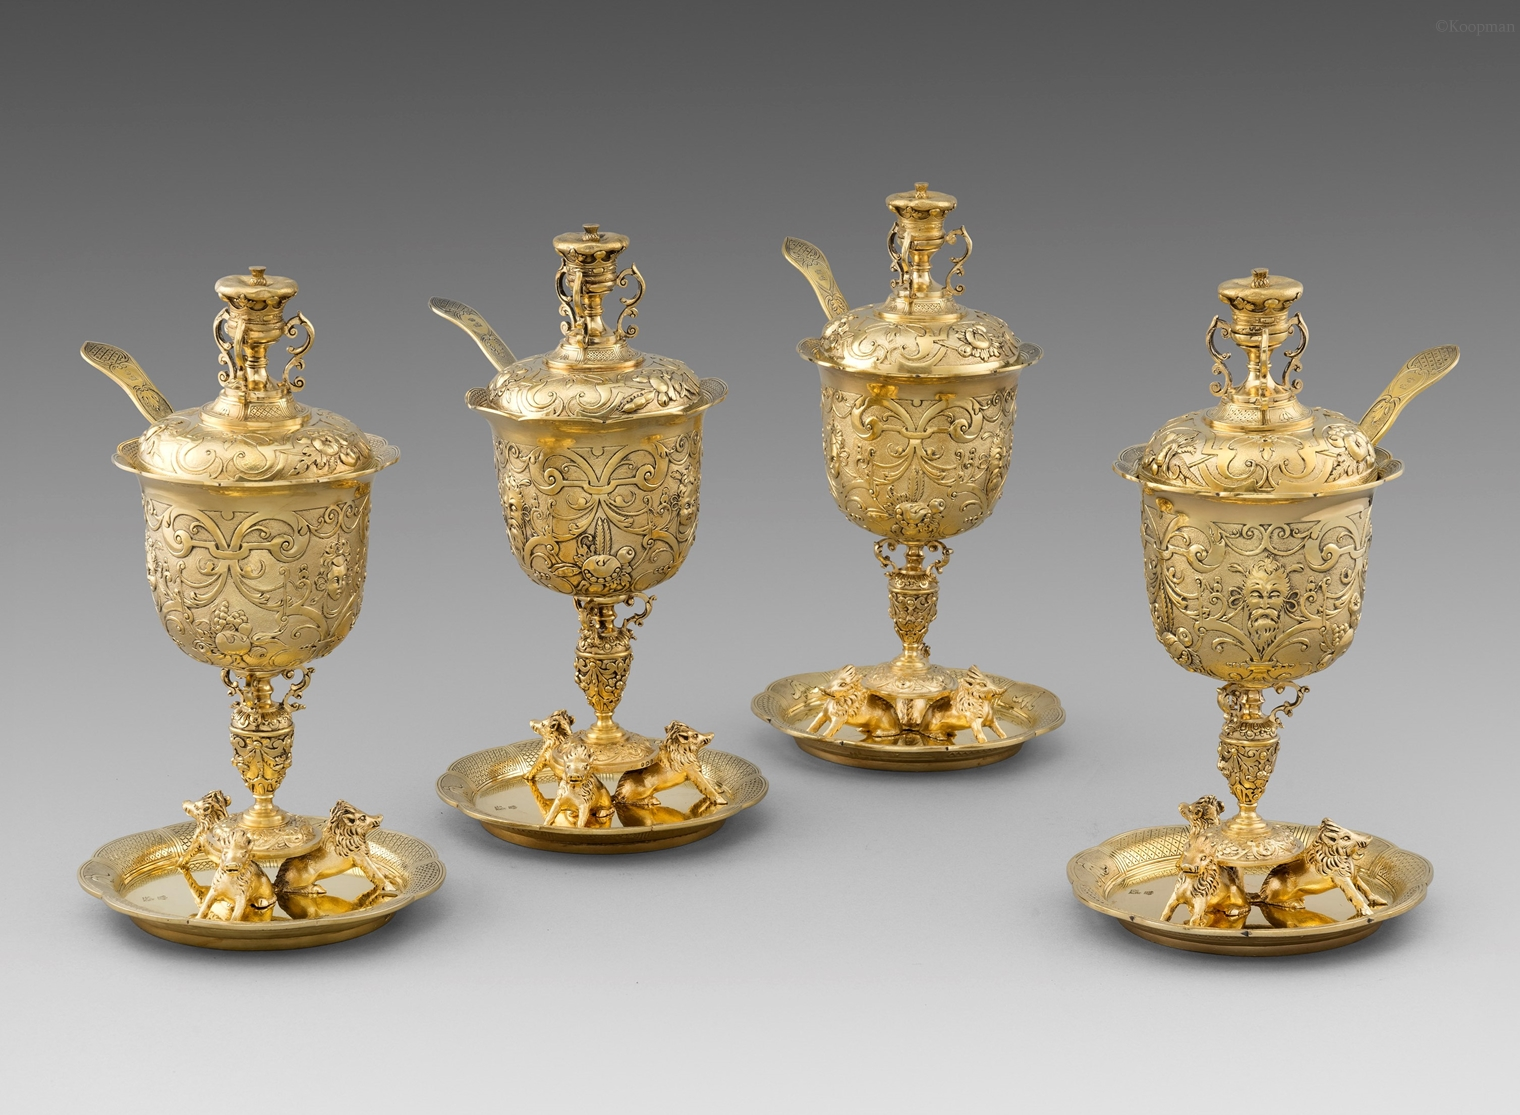 A Set of Four William IV Sugar Vases with Covers and Sugar Sifters